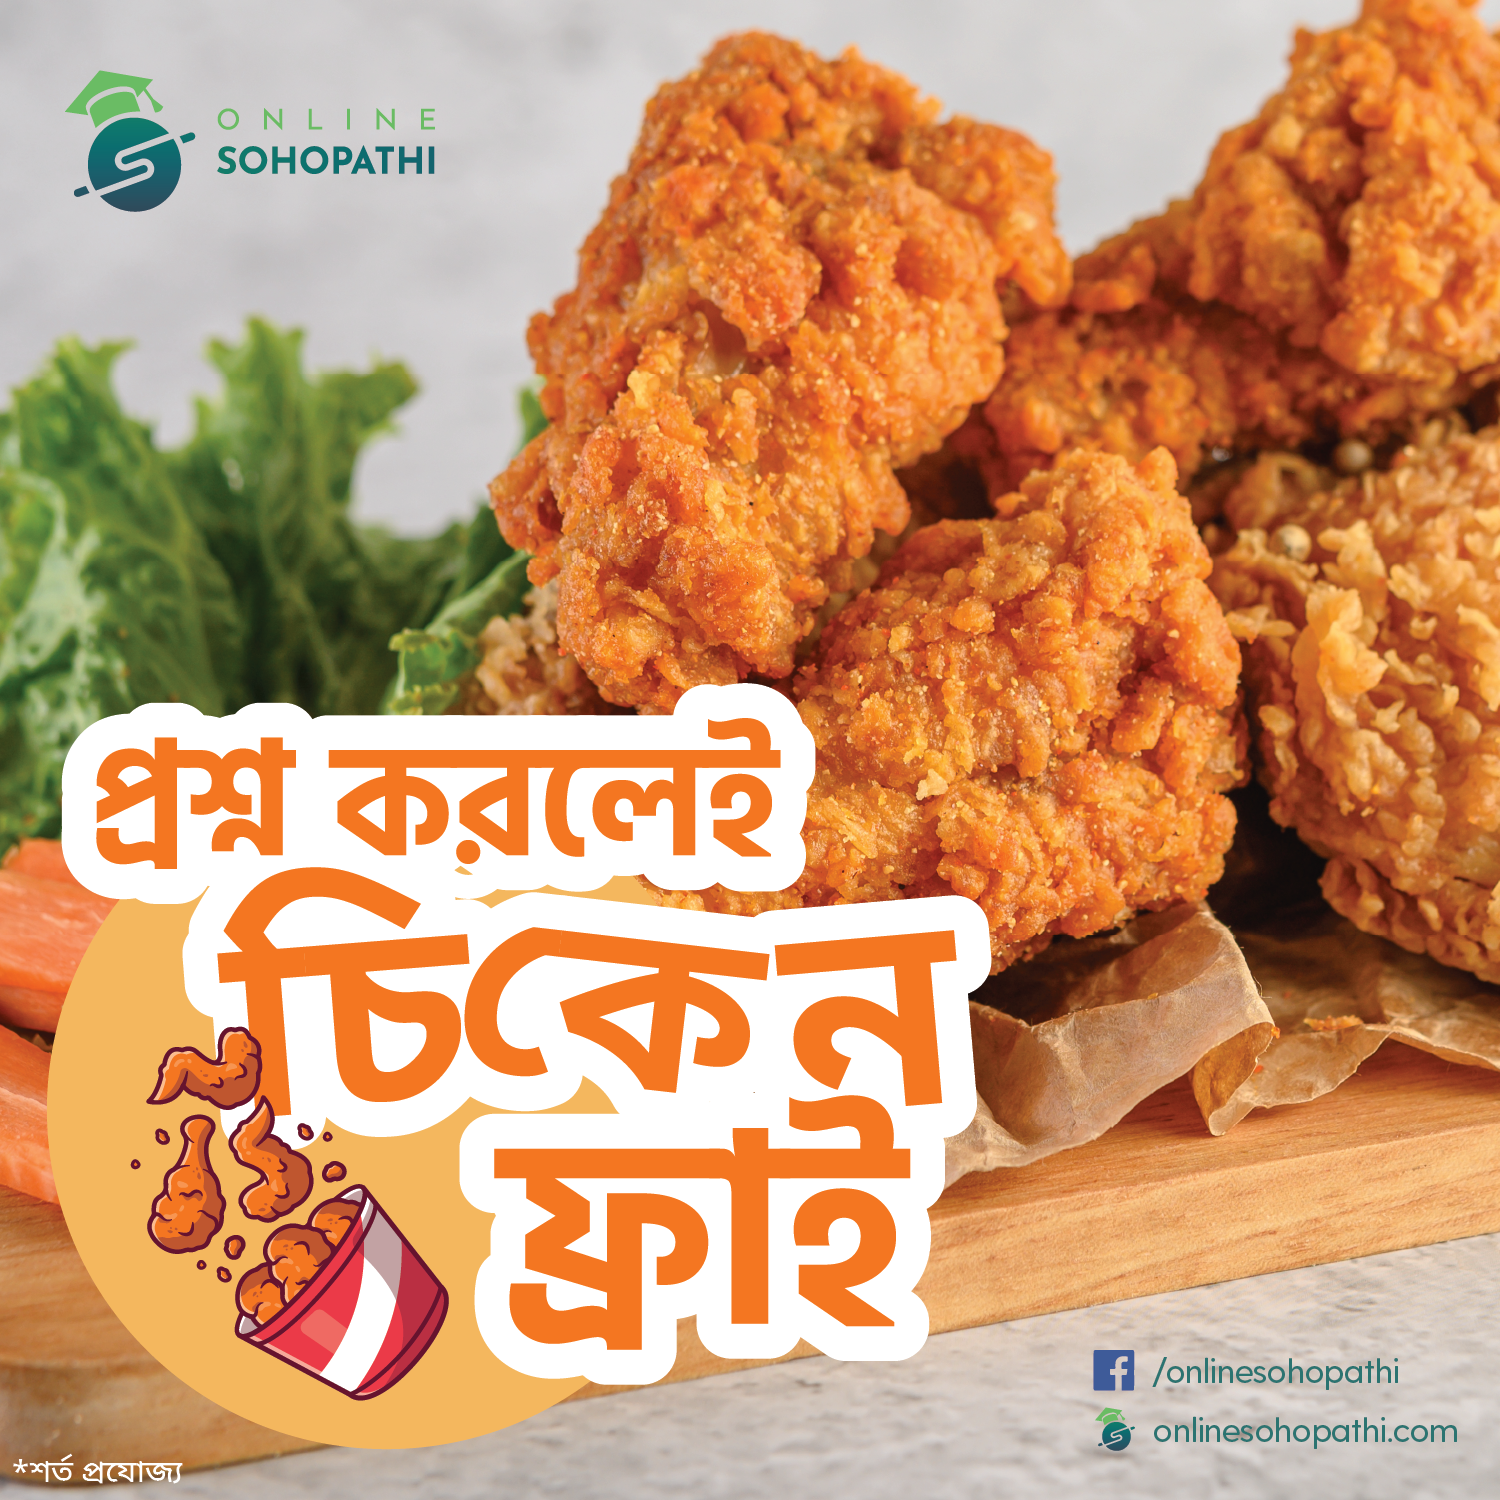 Chicken fry campaign